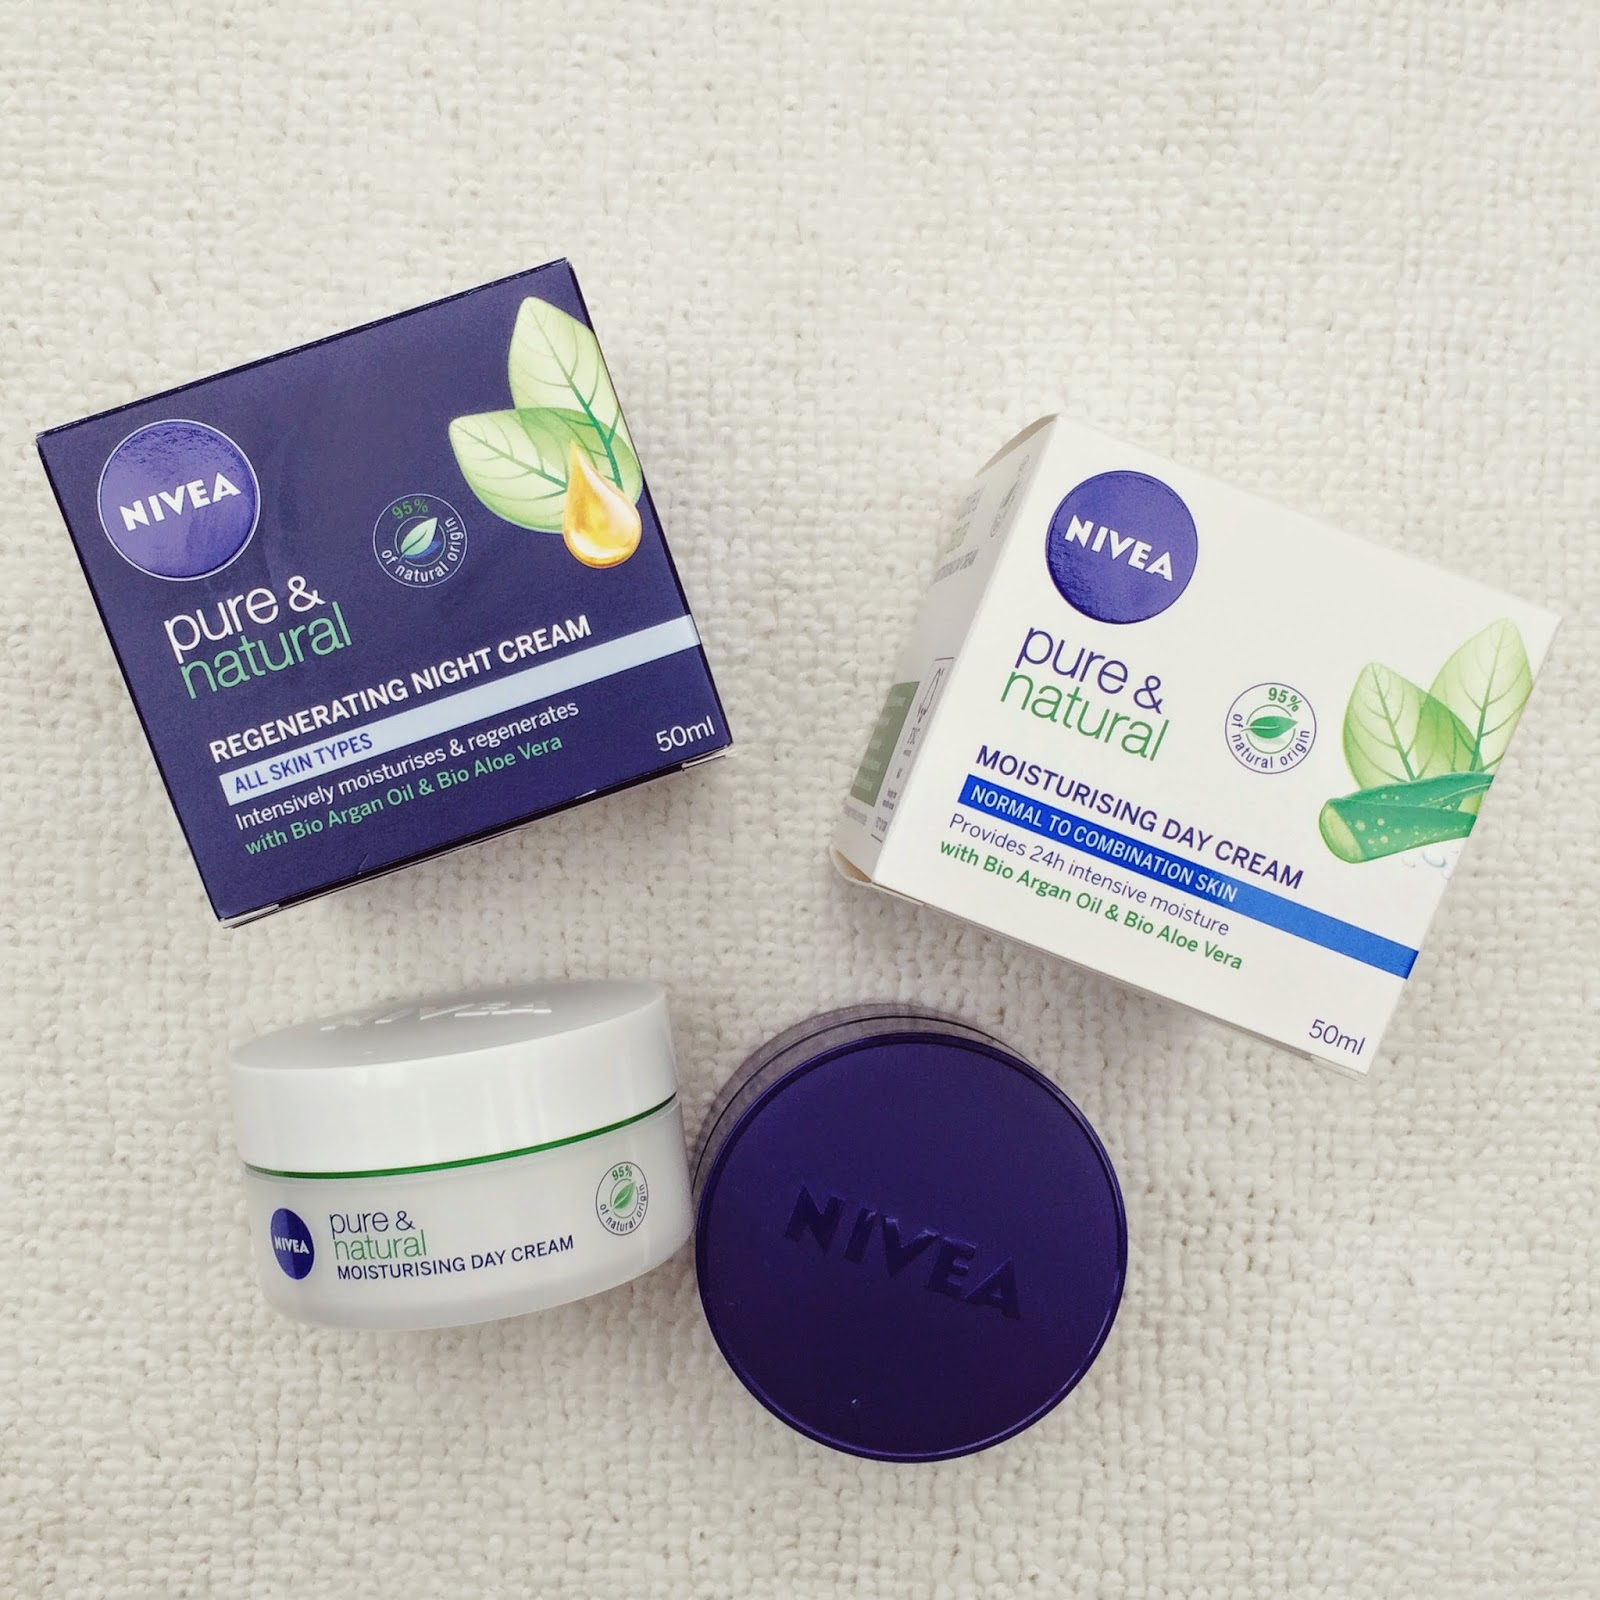 FashionFake, a UK fashion and lifestyle blog. Find out what I thought about these hughstreet facial creams in my review of the Nivea Pure & Natural Day and Night cream review.